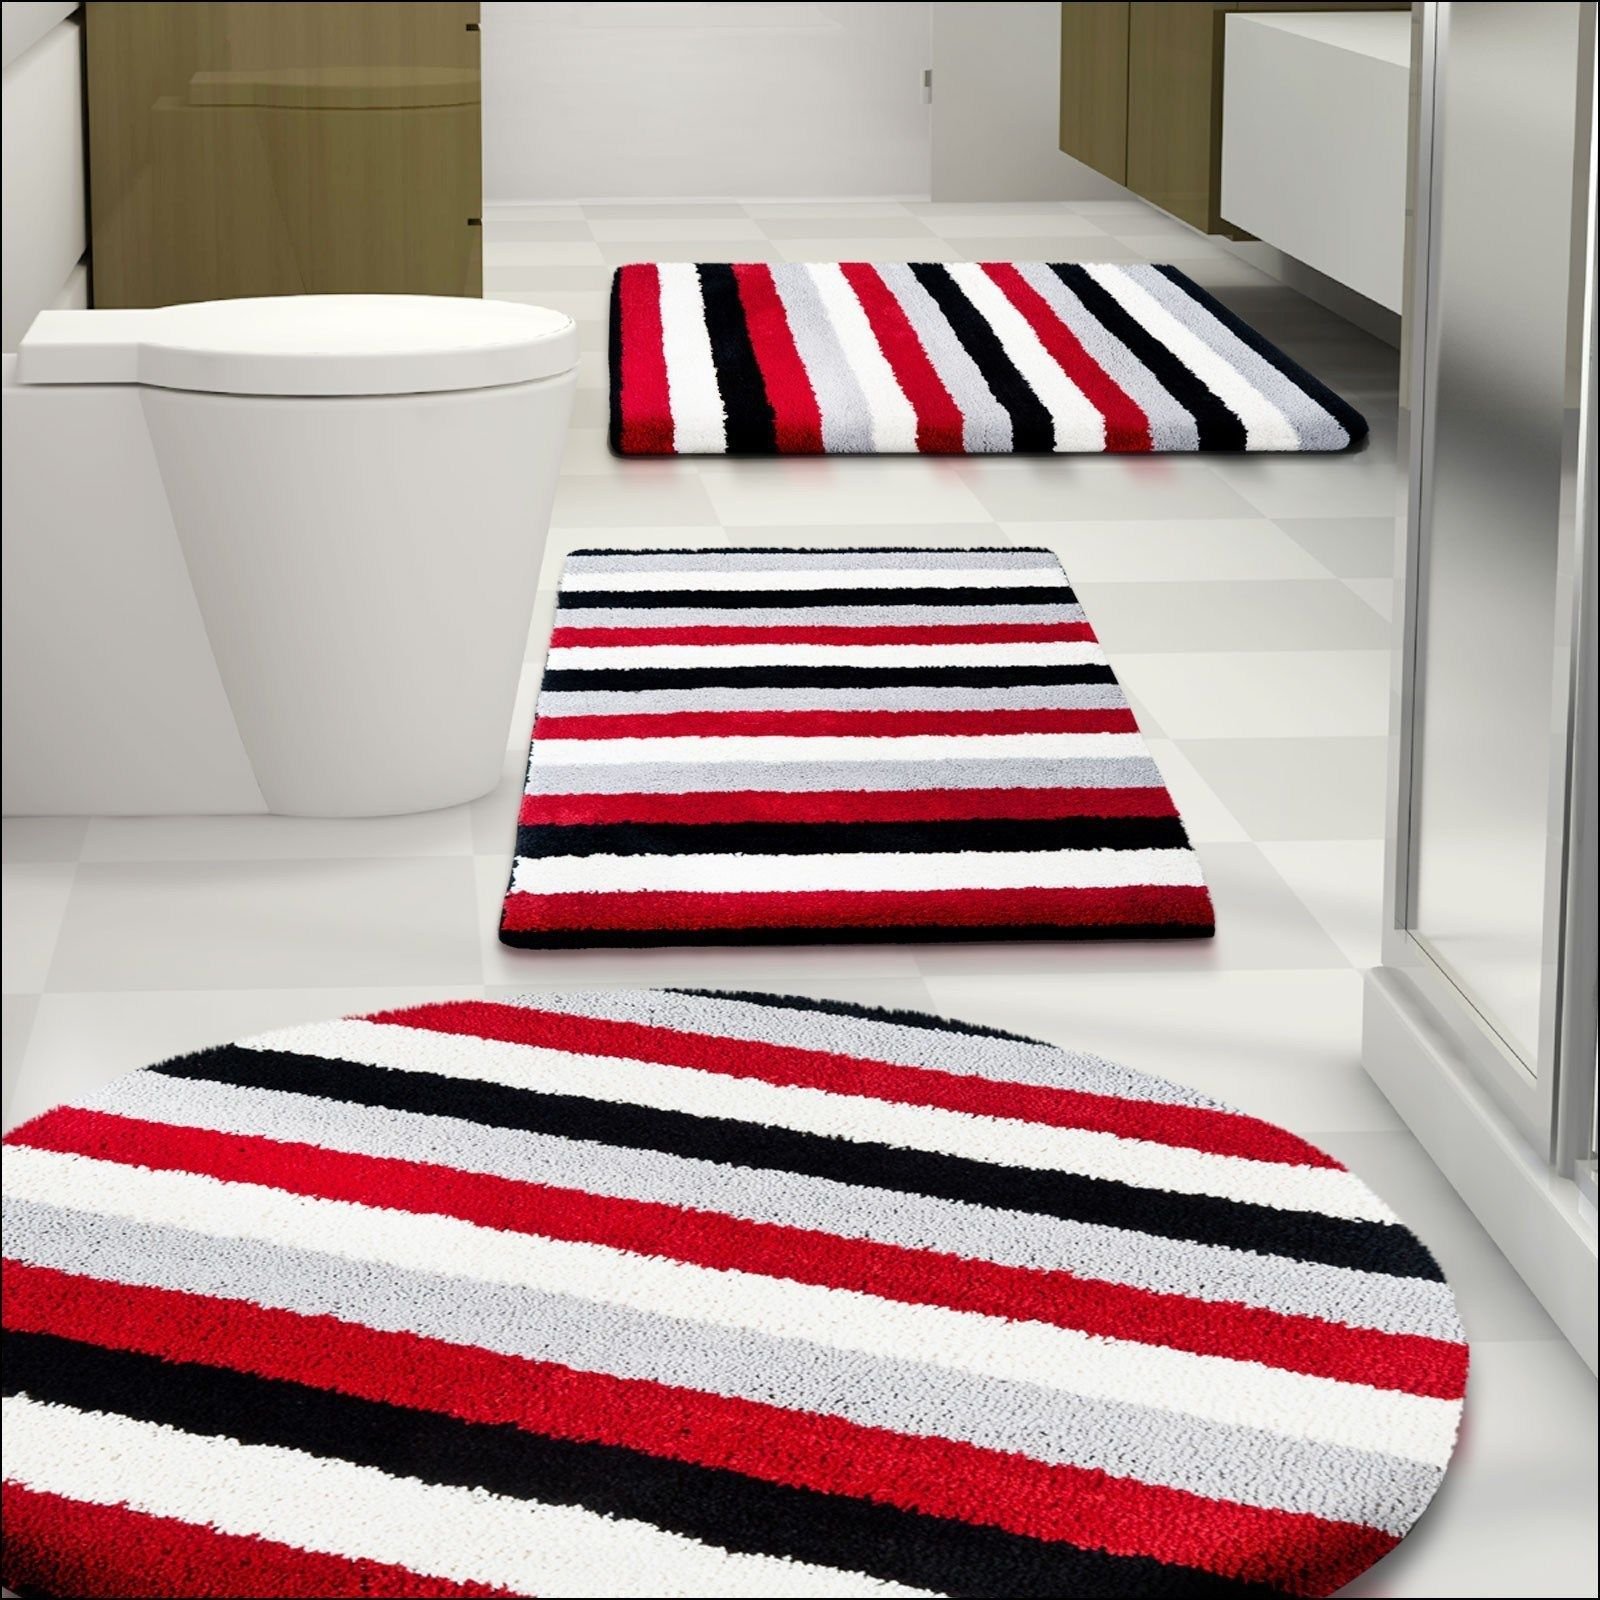 Awesome Navy And White Striped Bath Mat Red Bathroom Rugs